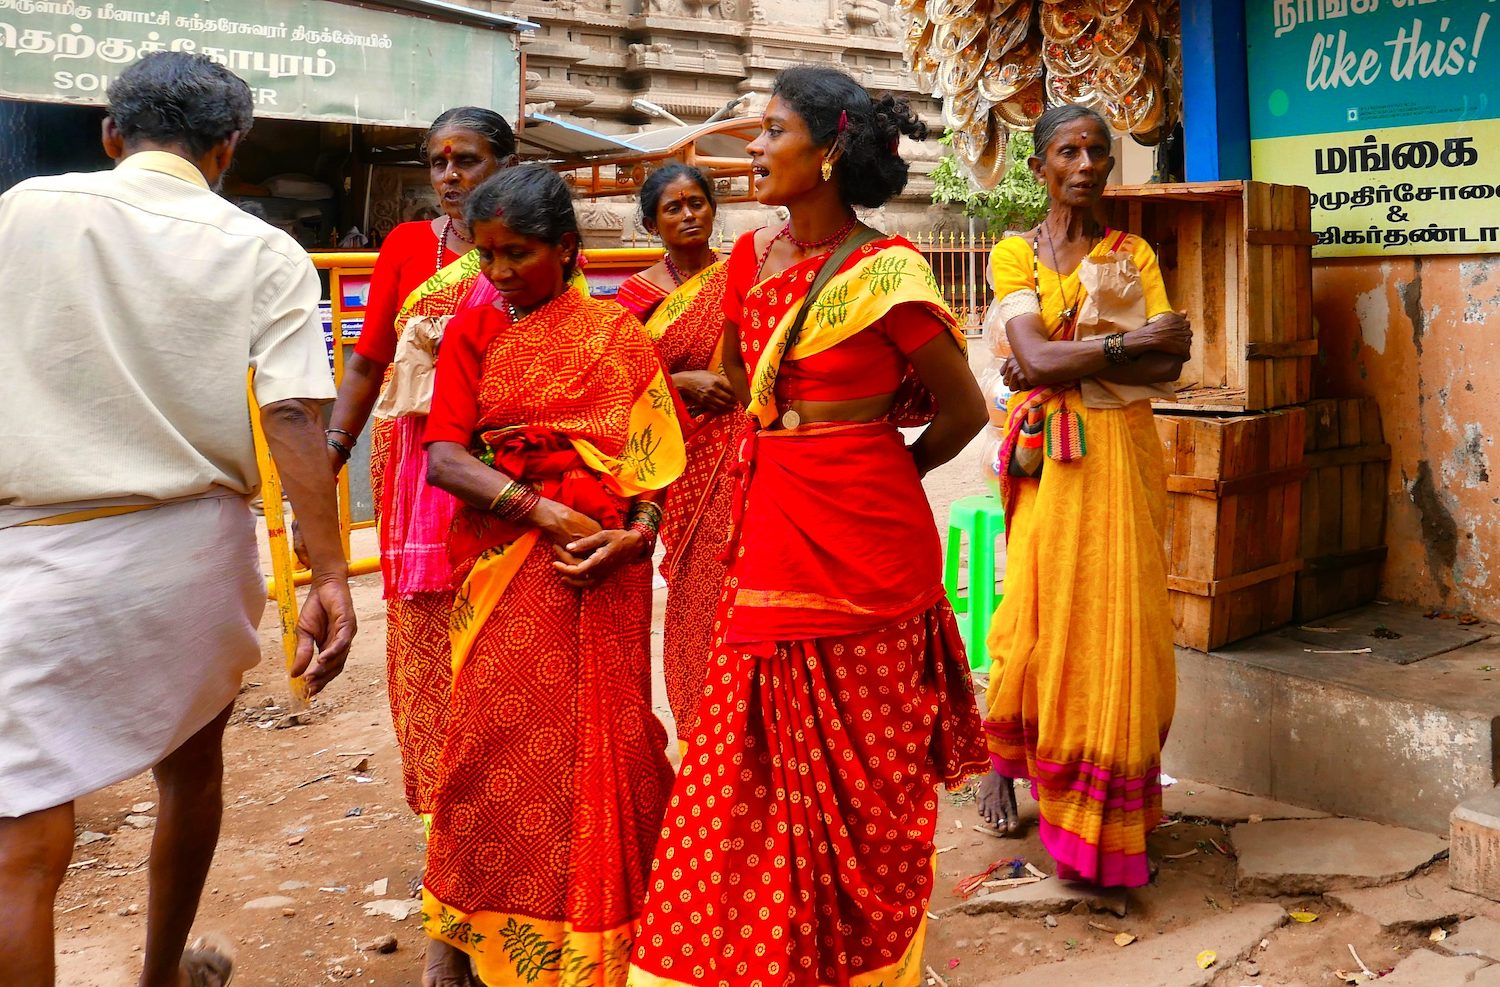 Madurai Like this